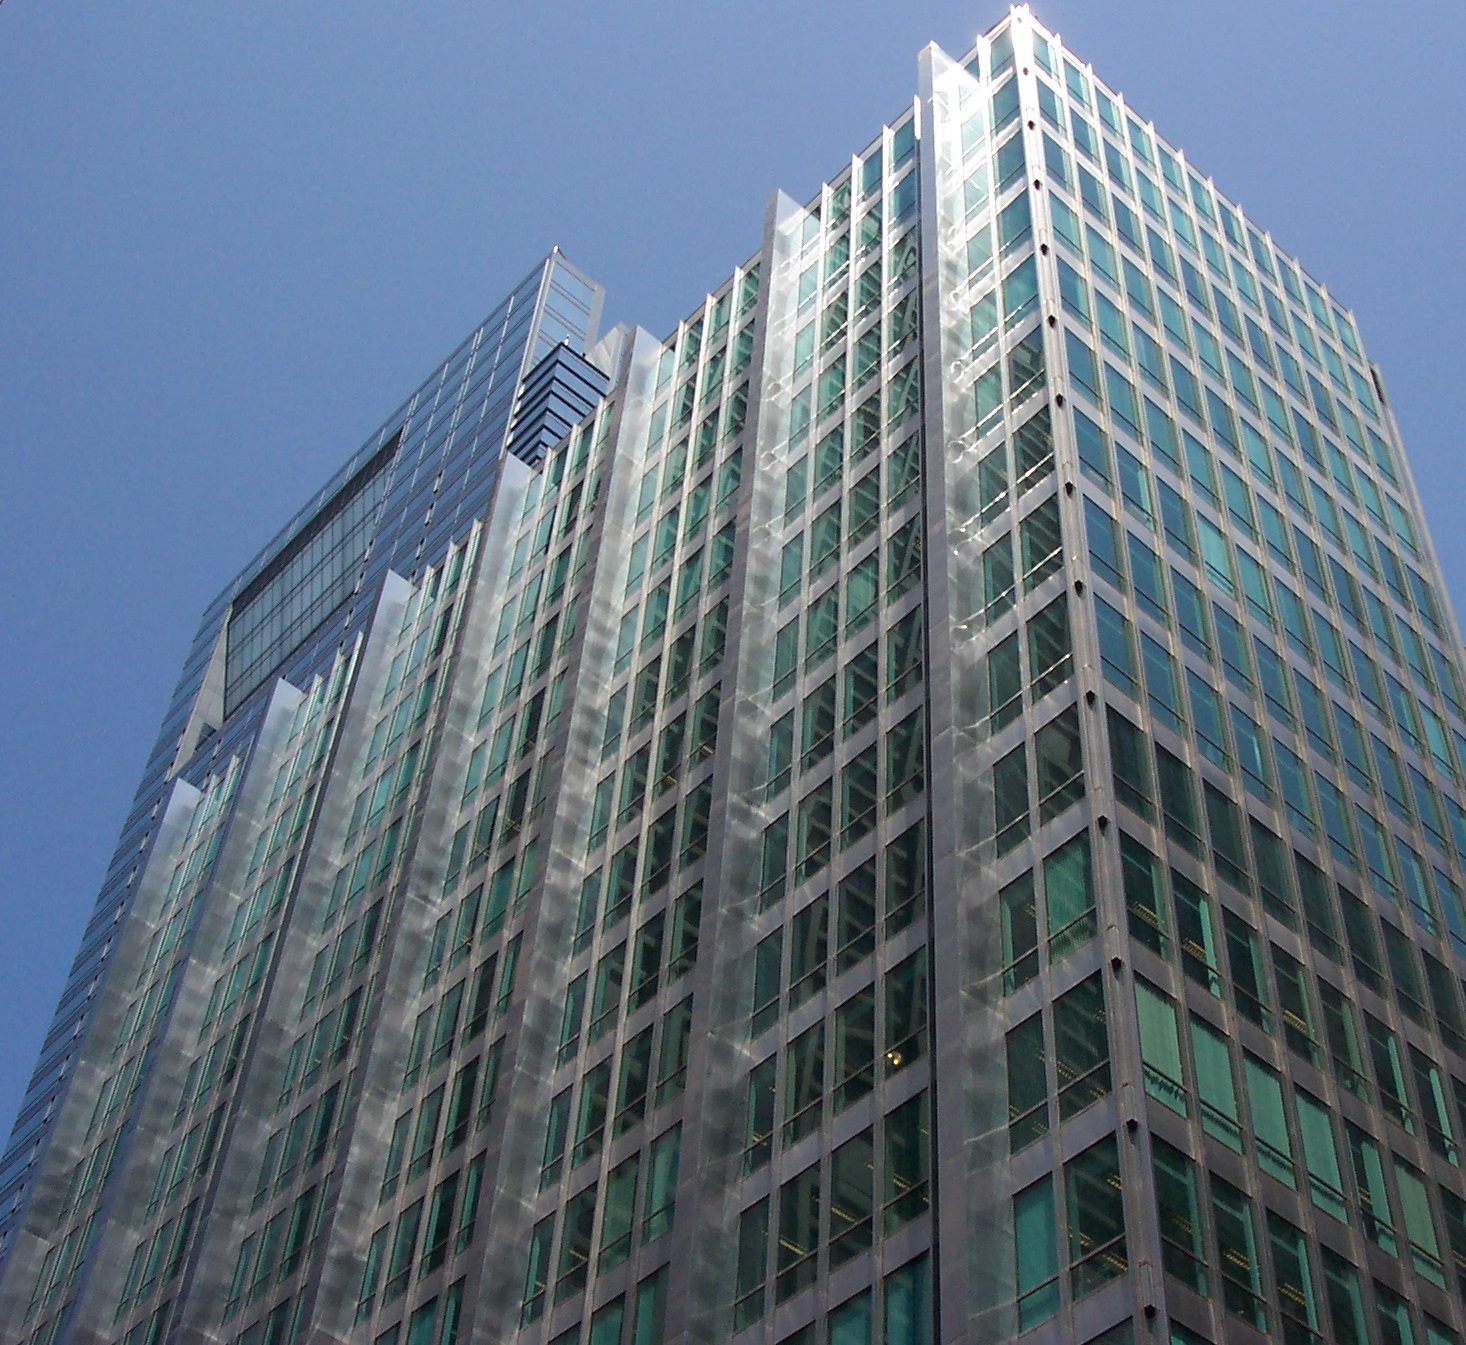 Inland Steel Building - Wikipedia